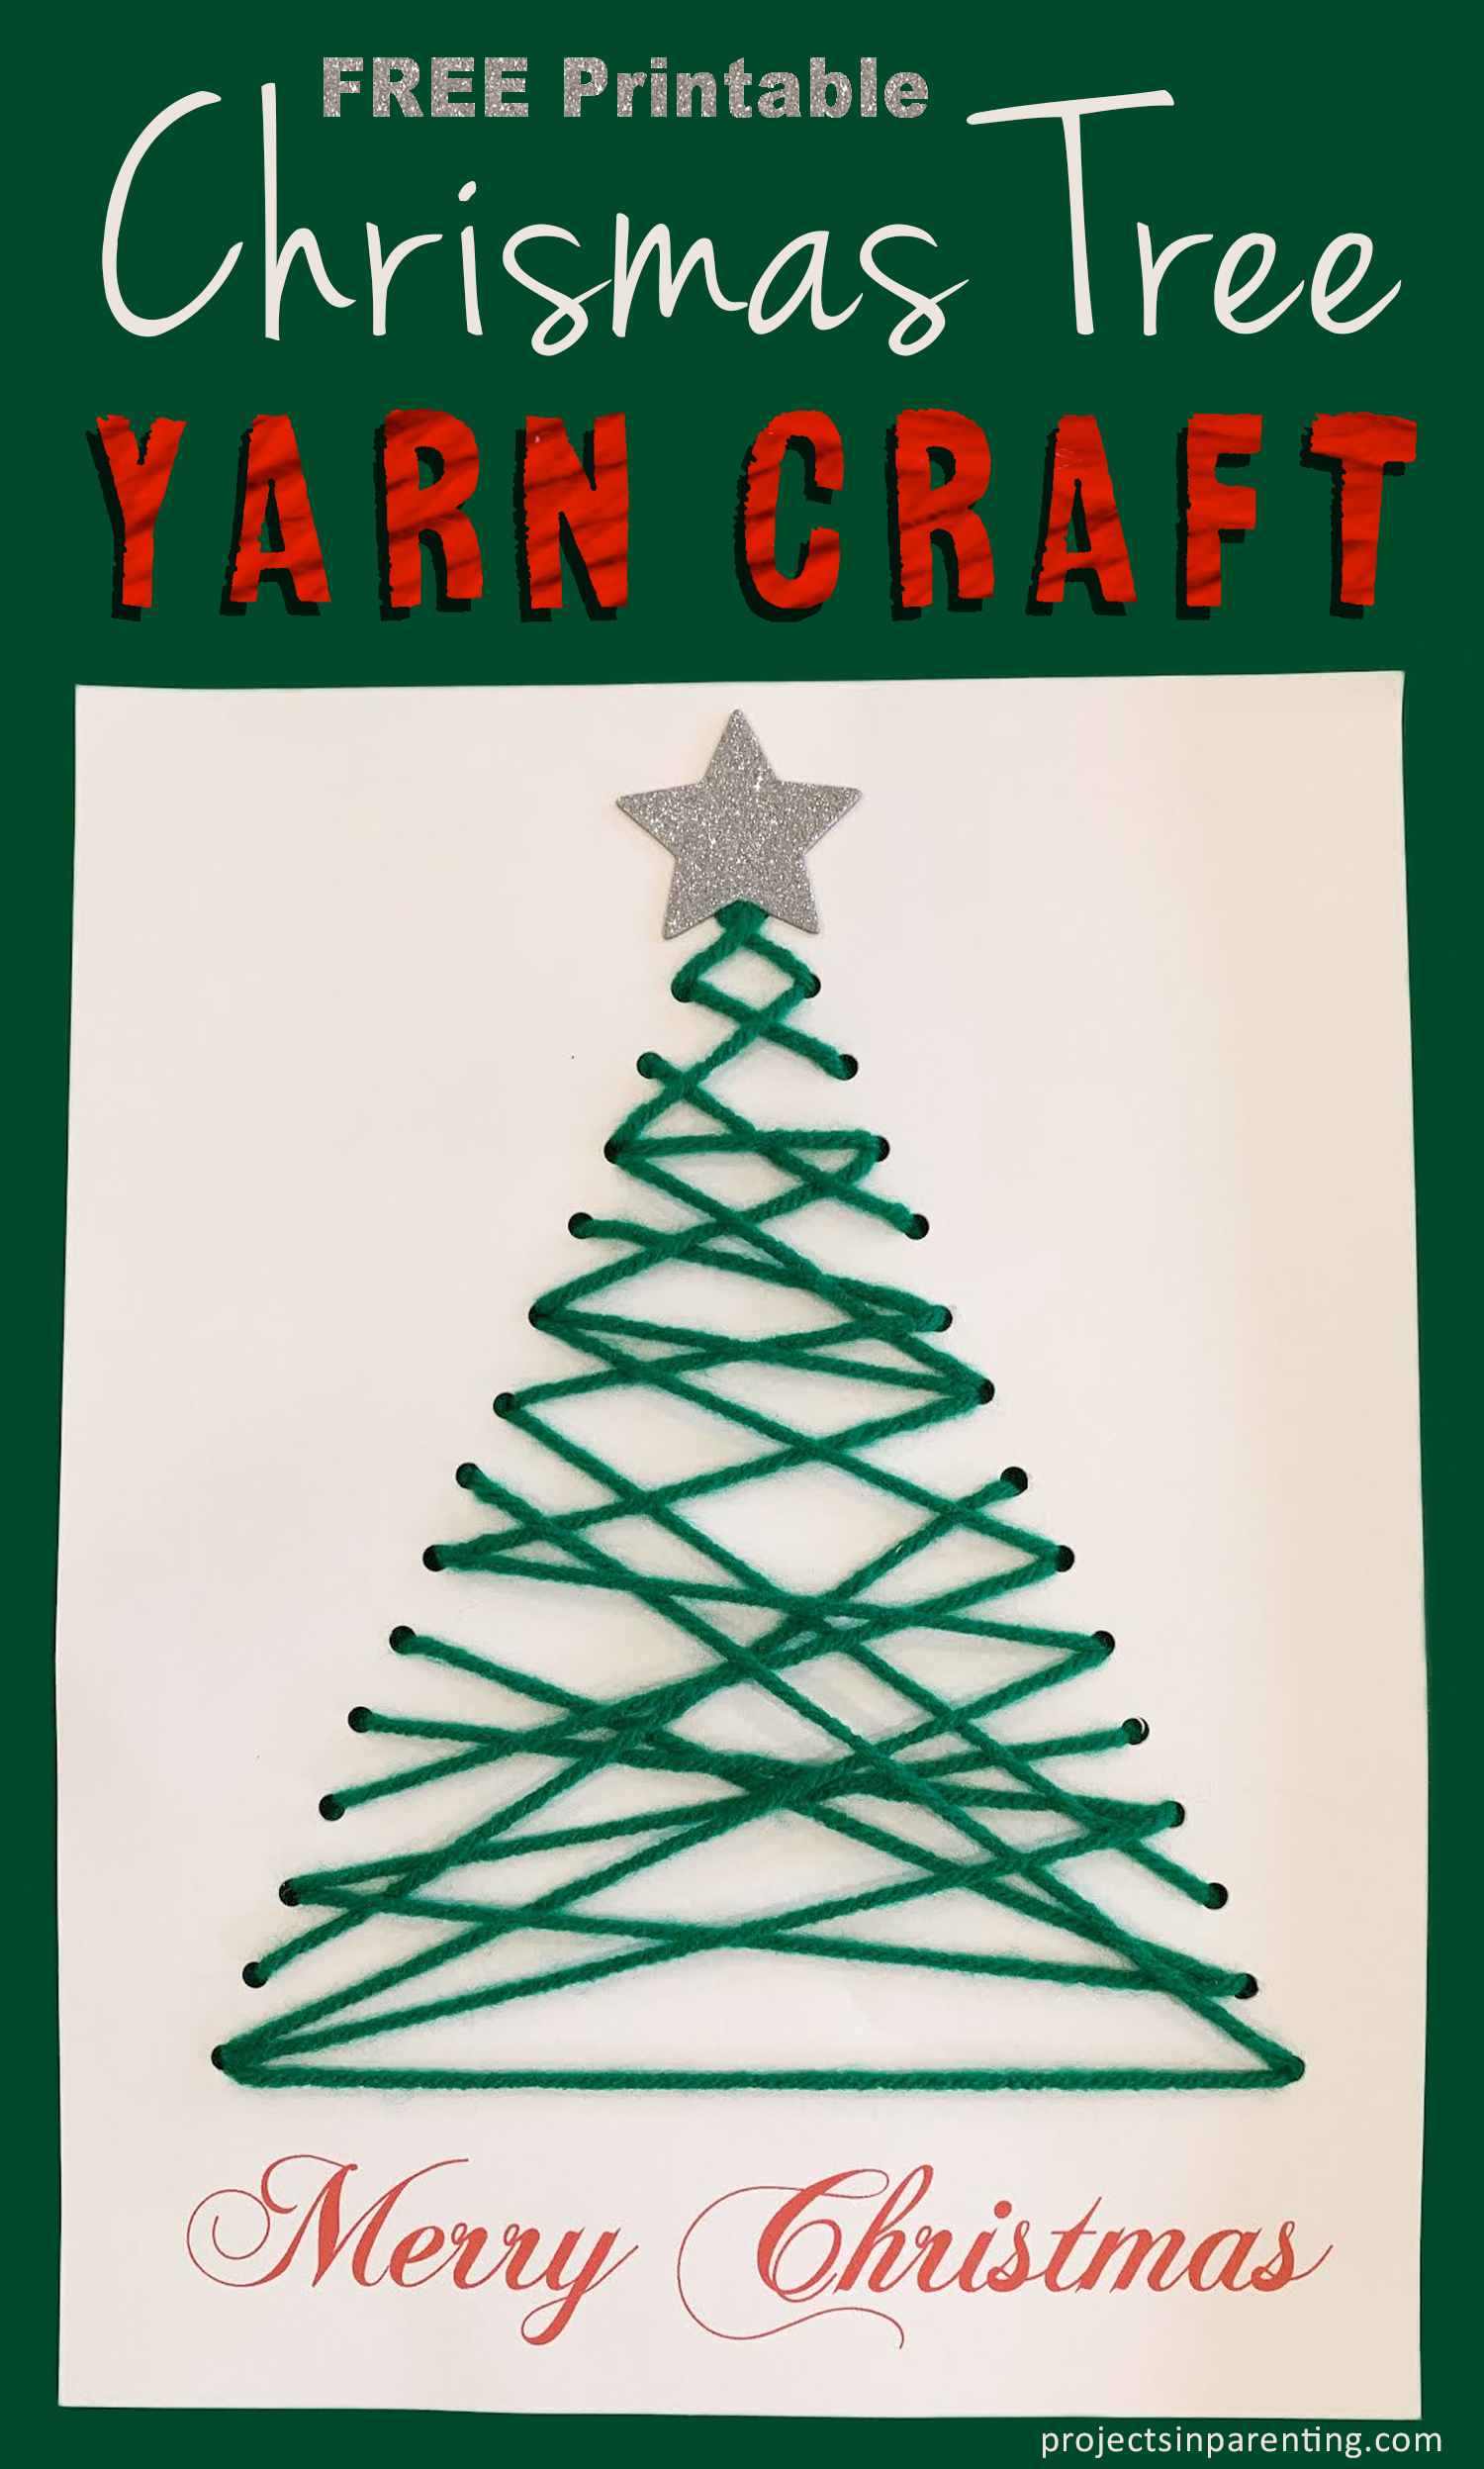 Christmas Tree Yarn Craft FREE Printable - projectsinparenting.com